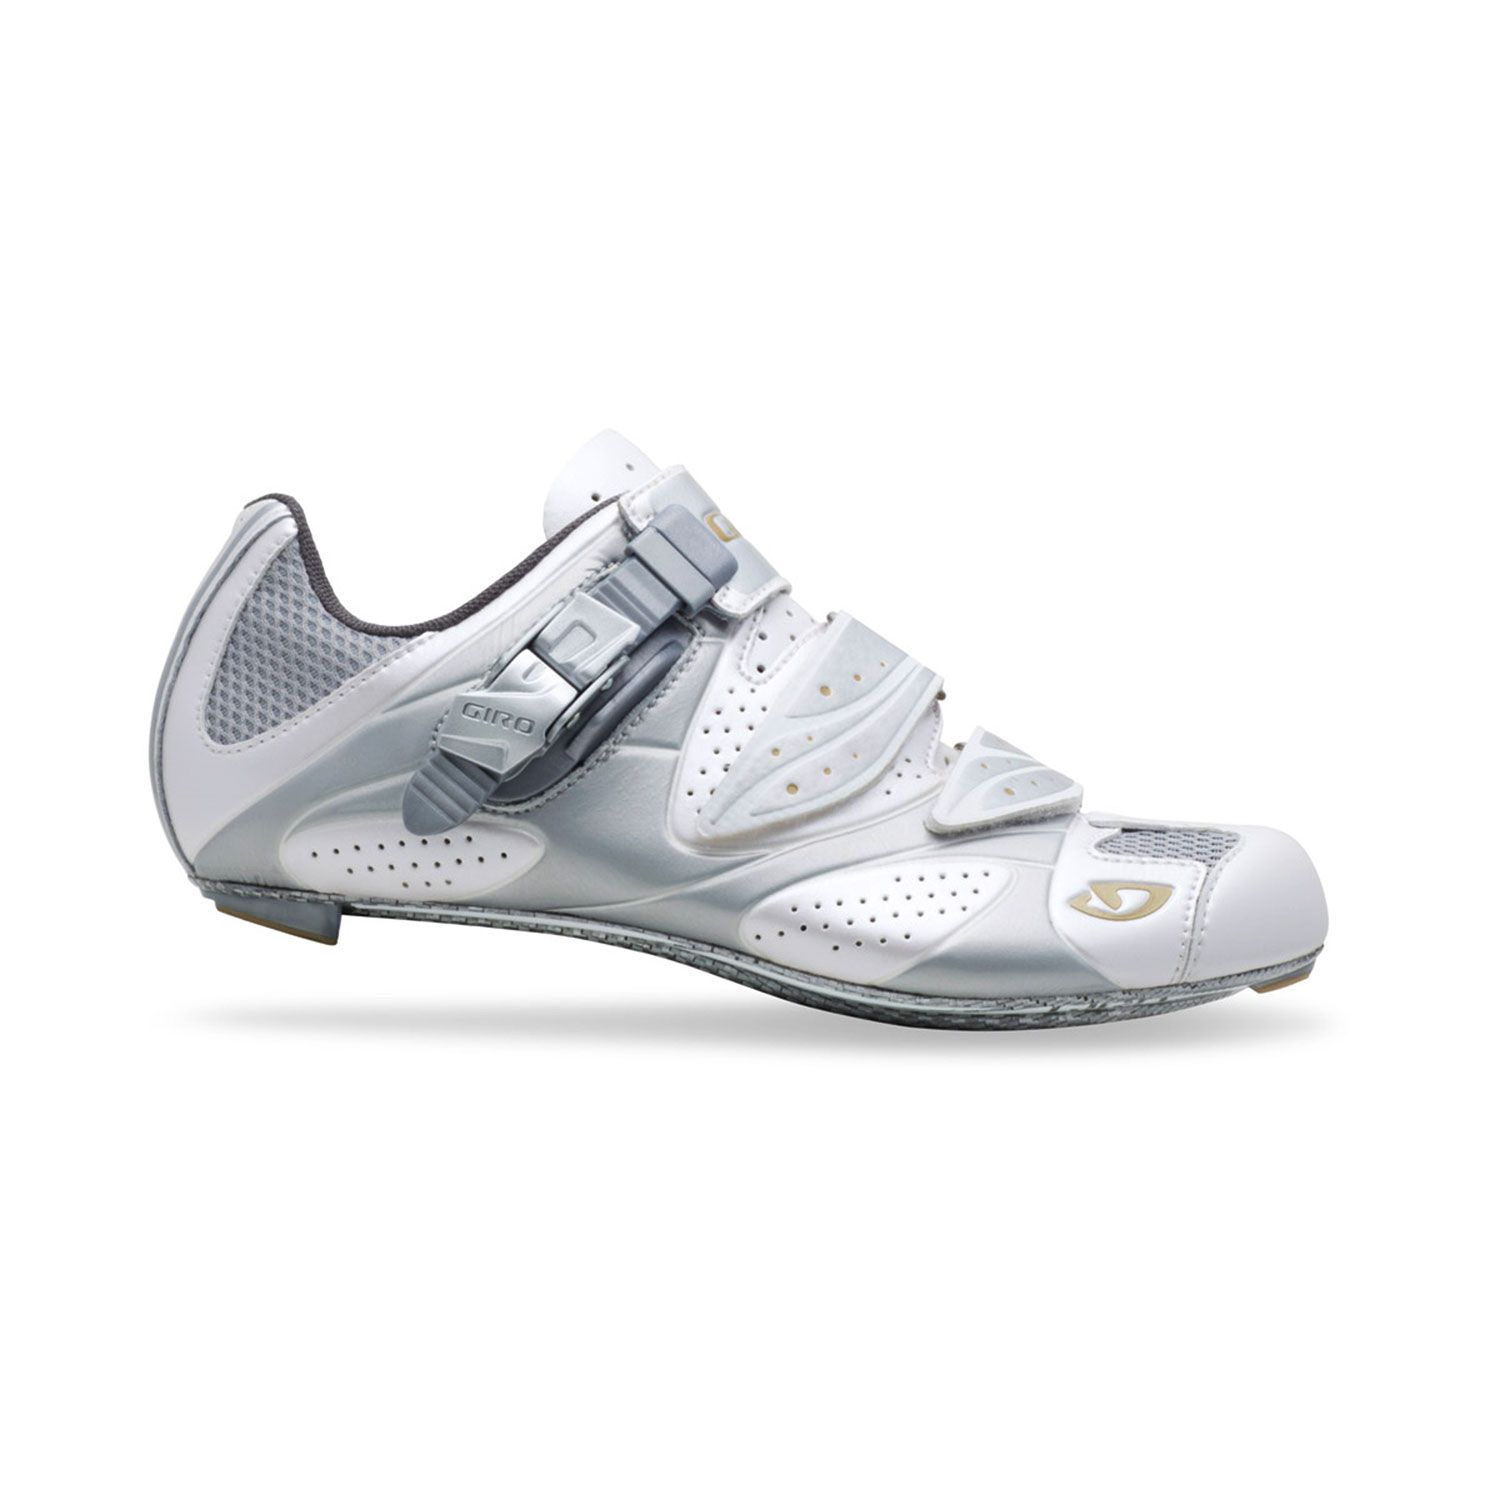 Giro Espada Women's Road Shoes - Closeout